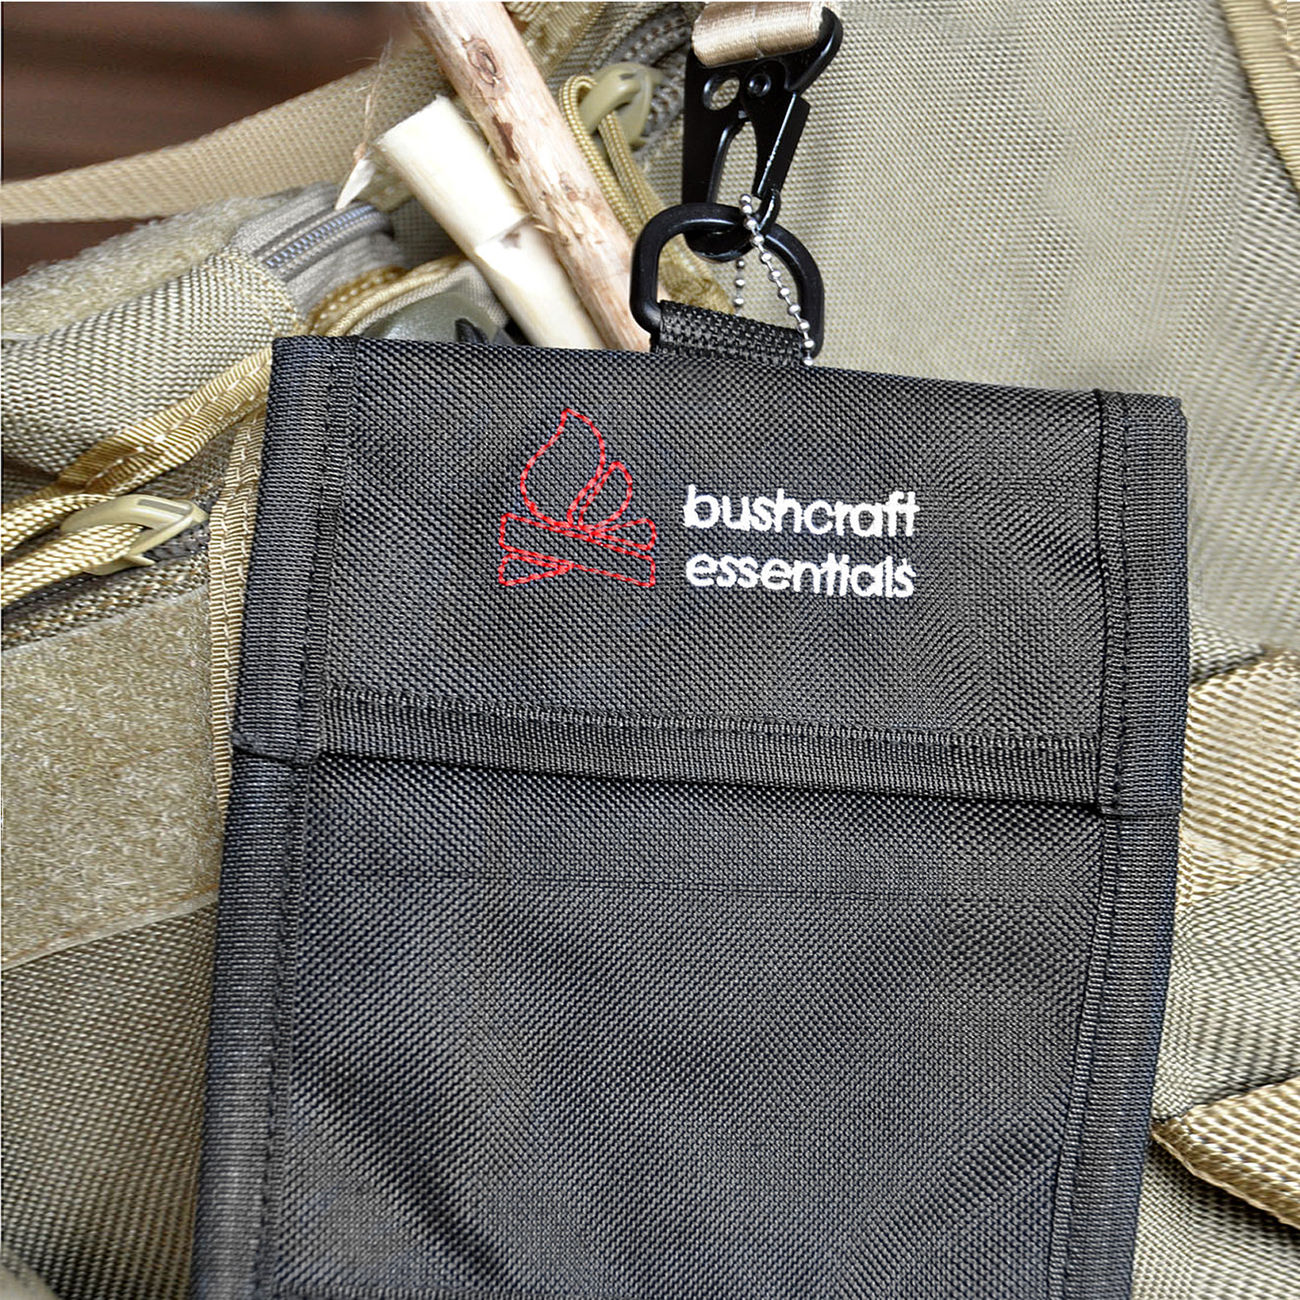 Bushcraft Essentials Outdoor-Tasche für Bushbox TI UL 1